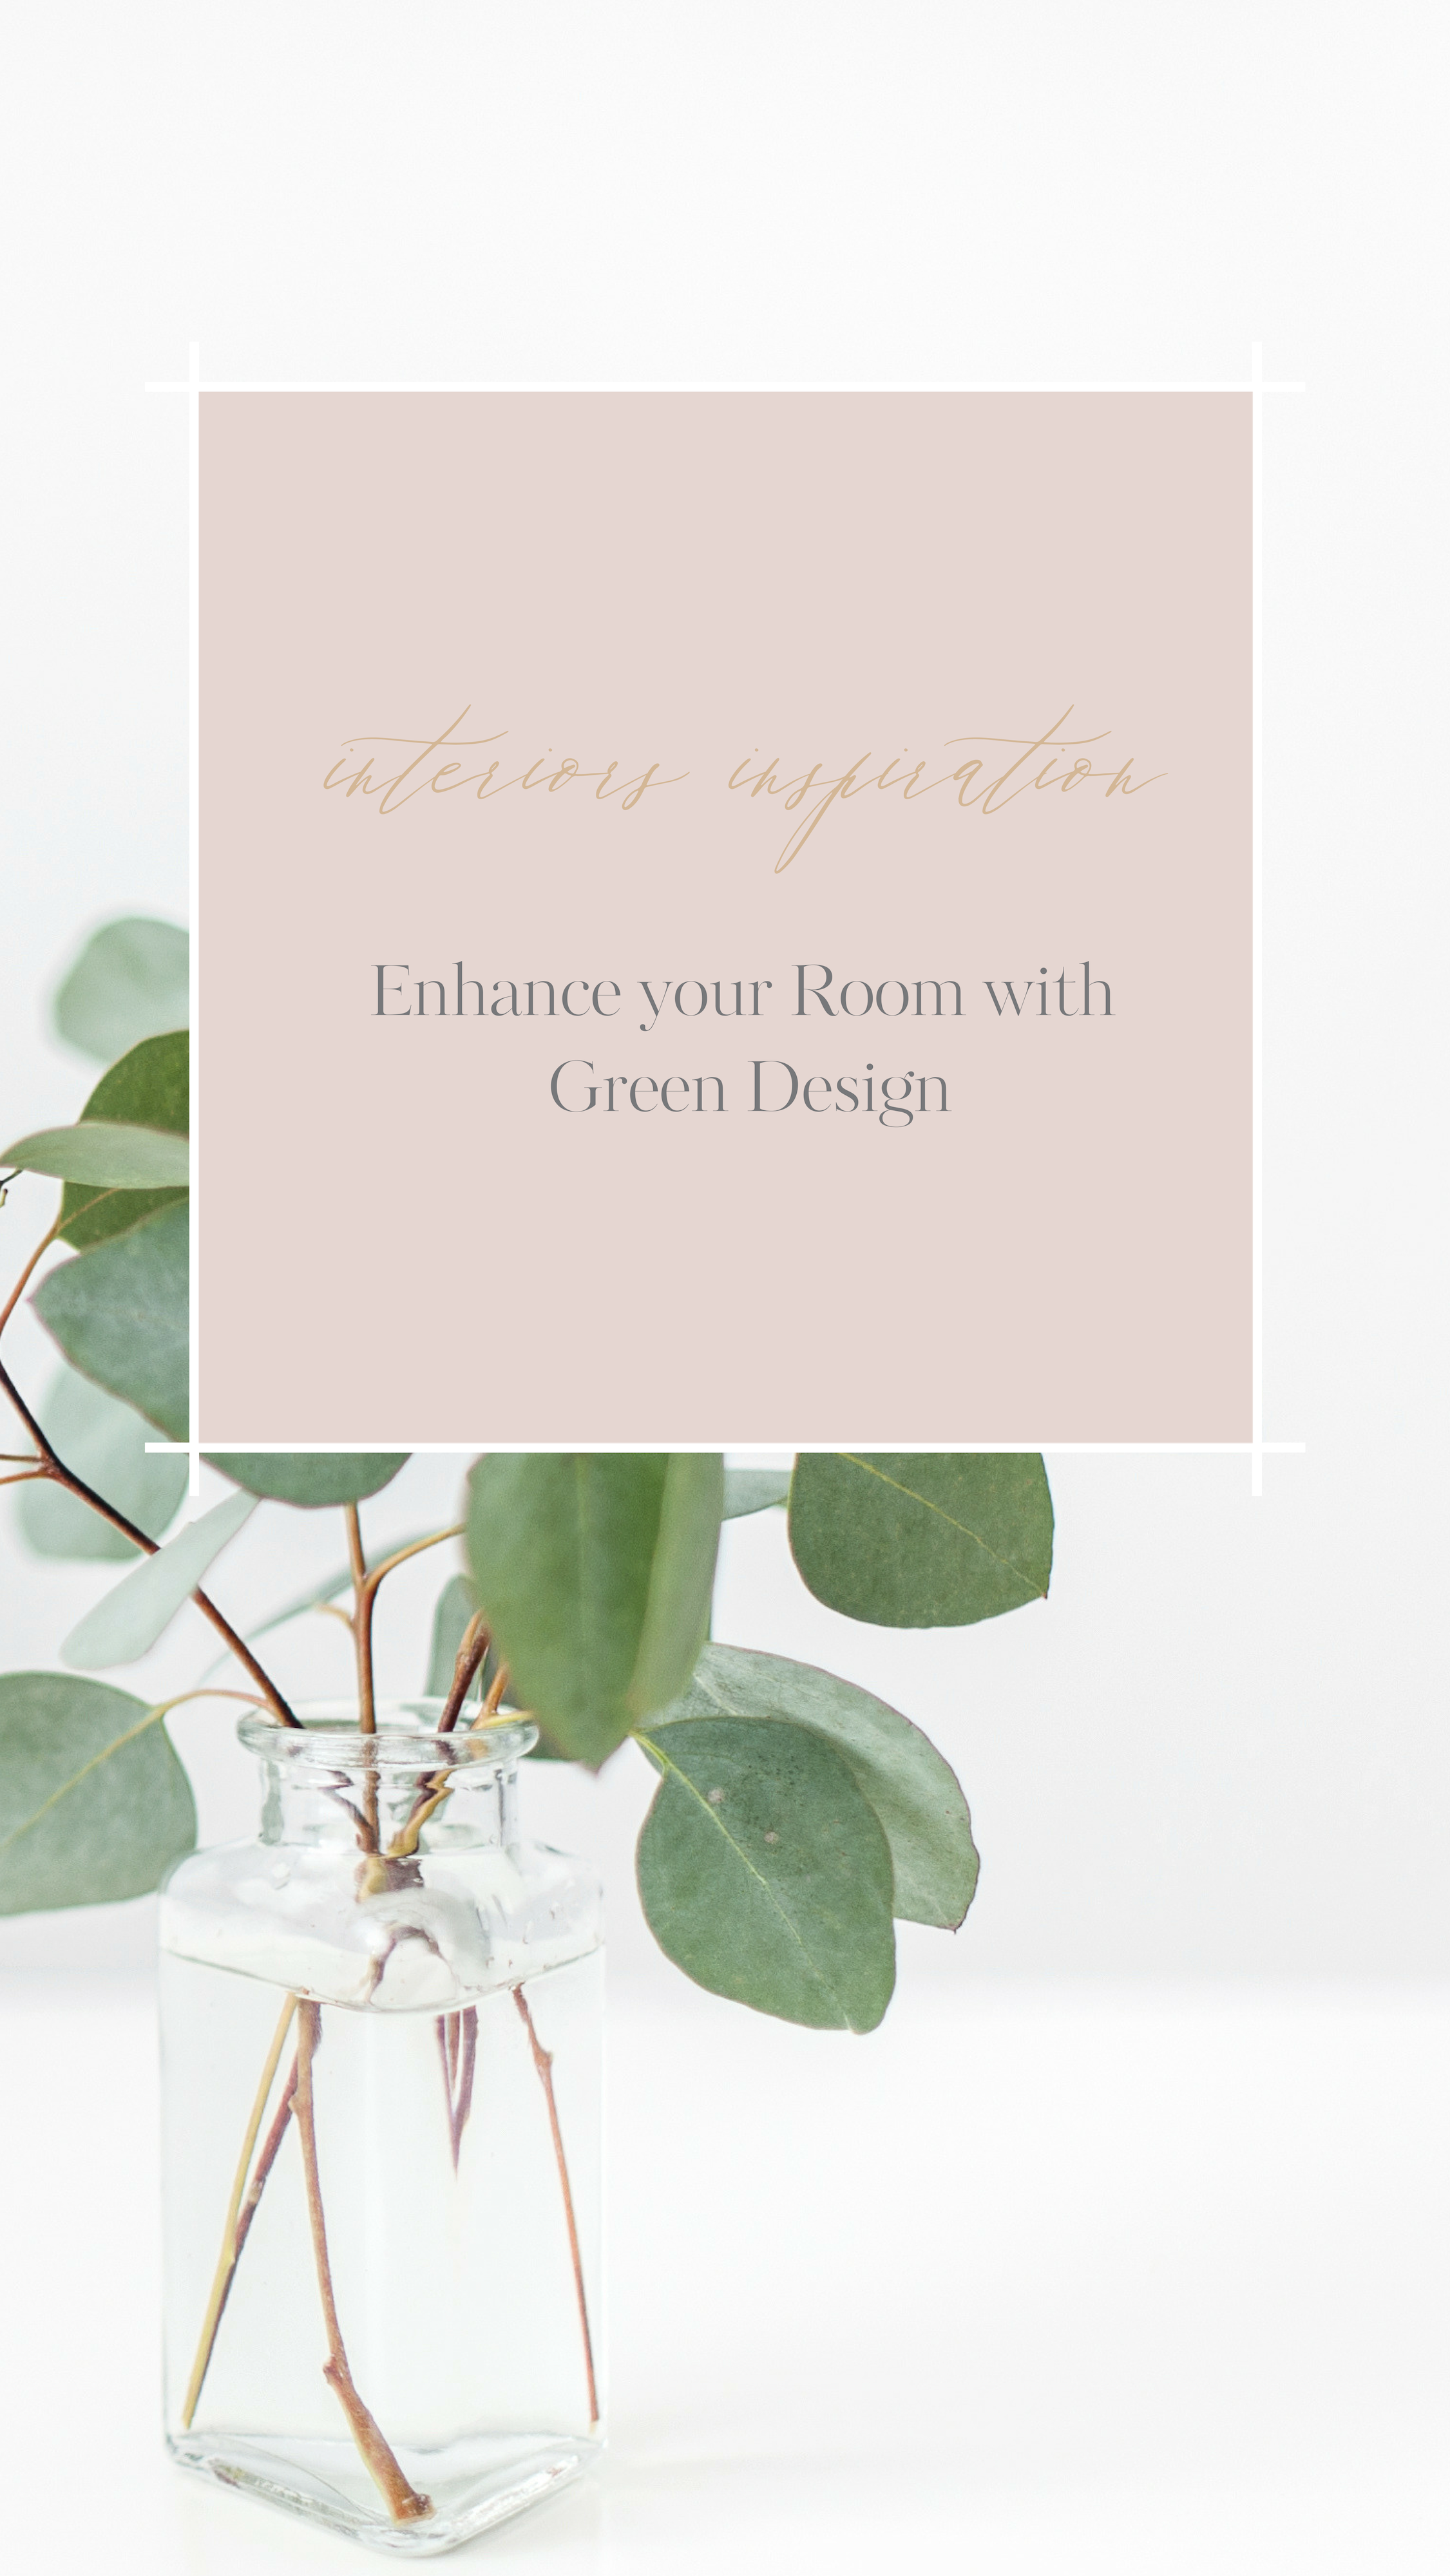 Enhance your Room with Green Design.png